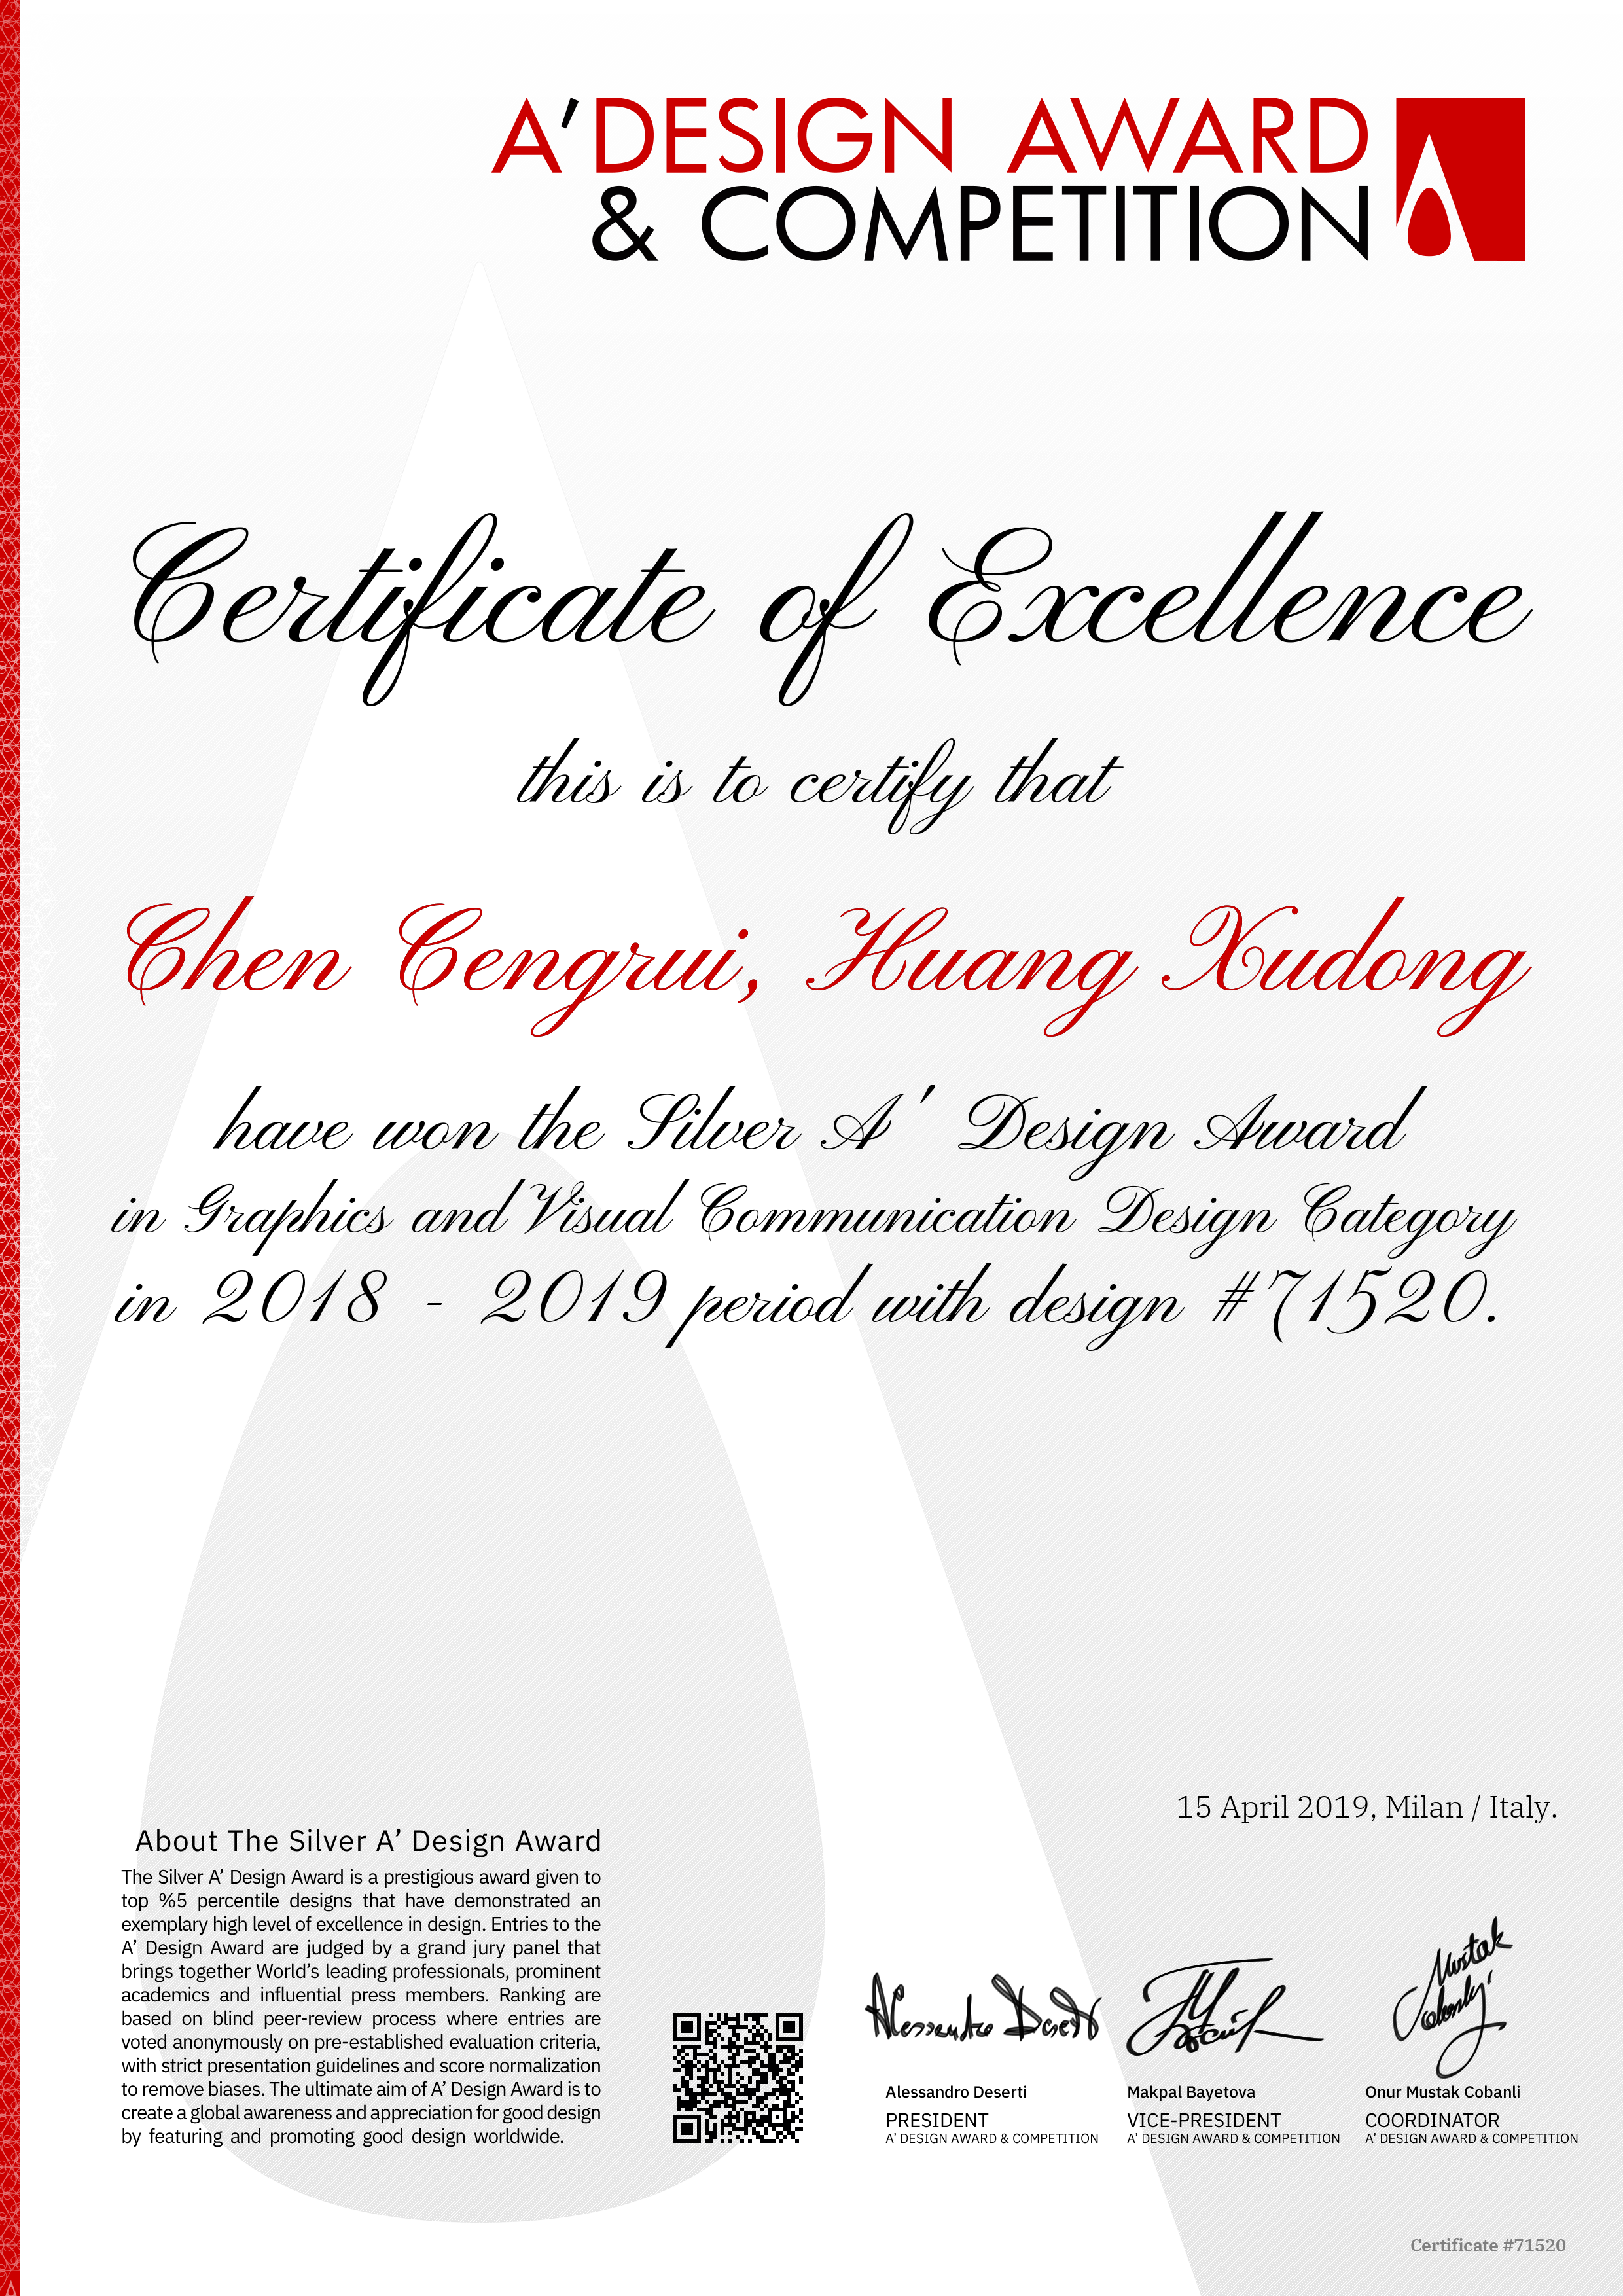 71520-certificate-option1.png